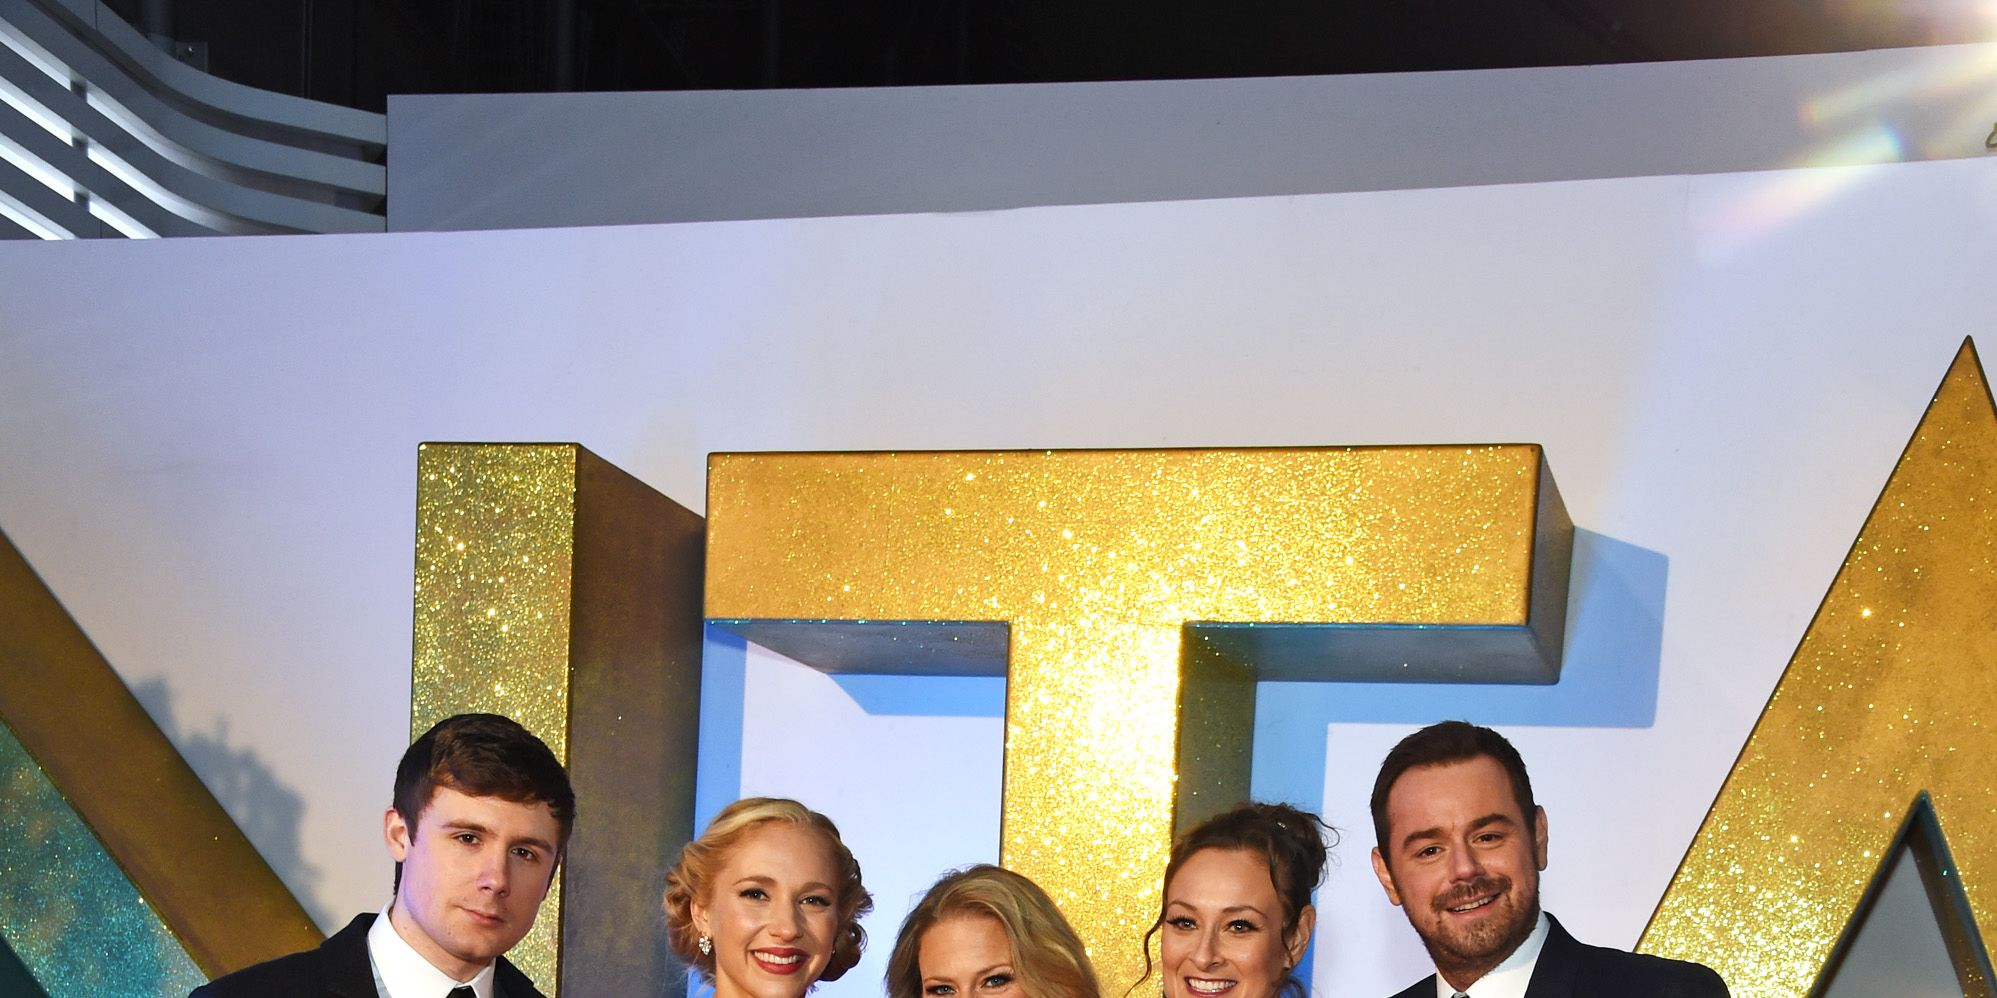 Danny Dyer and the EastEnders cast at NTAs